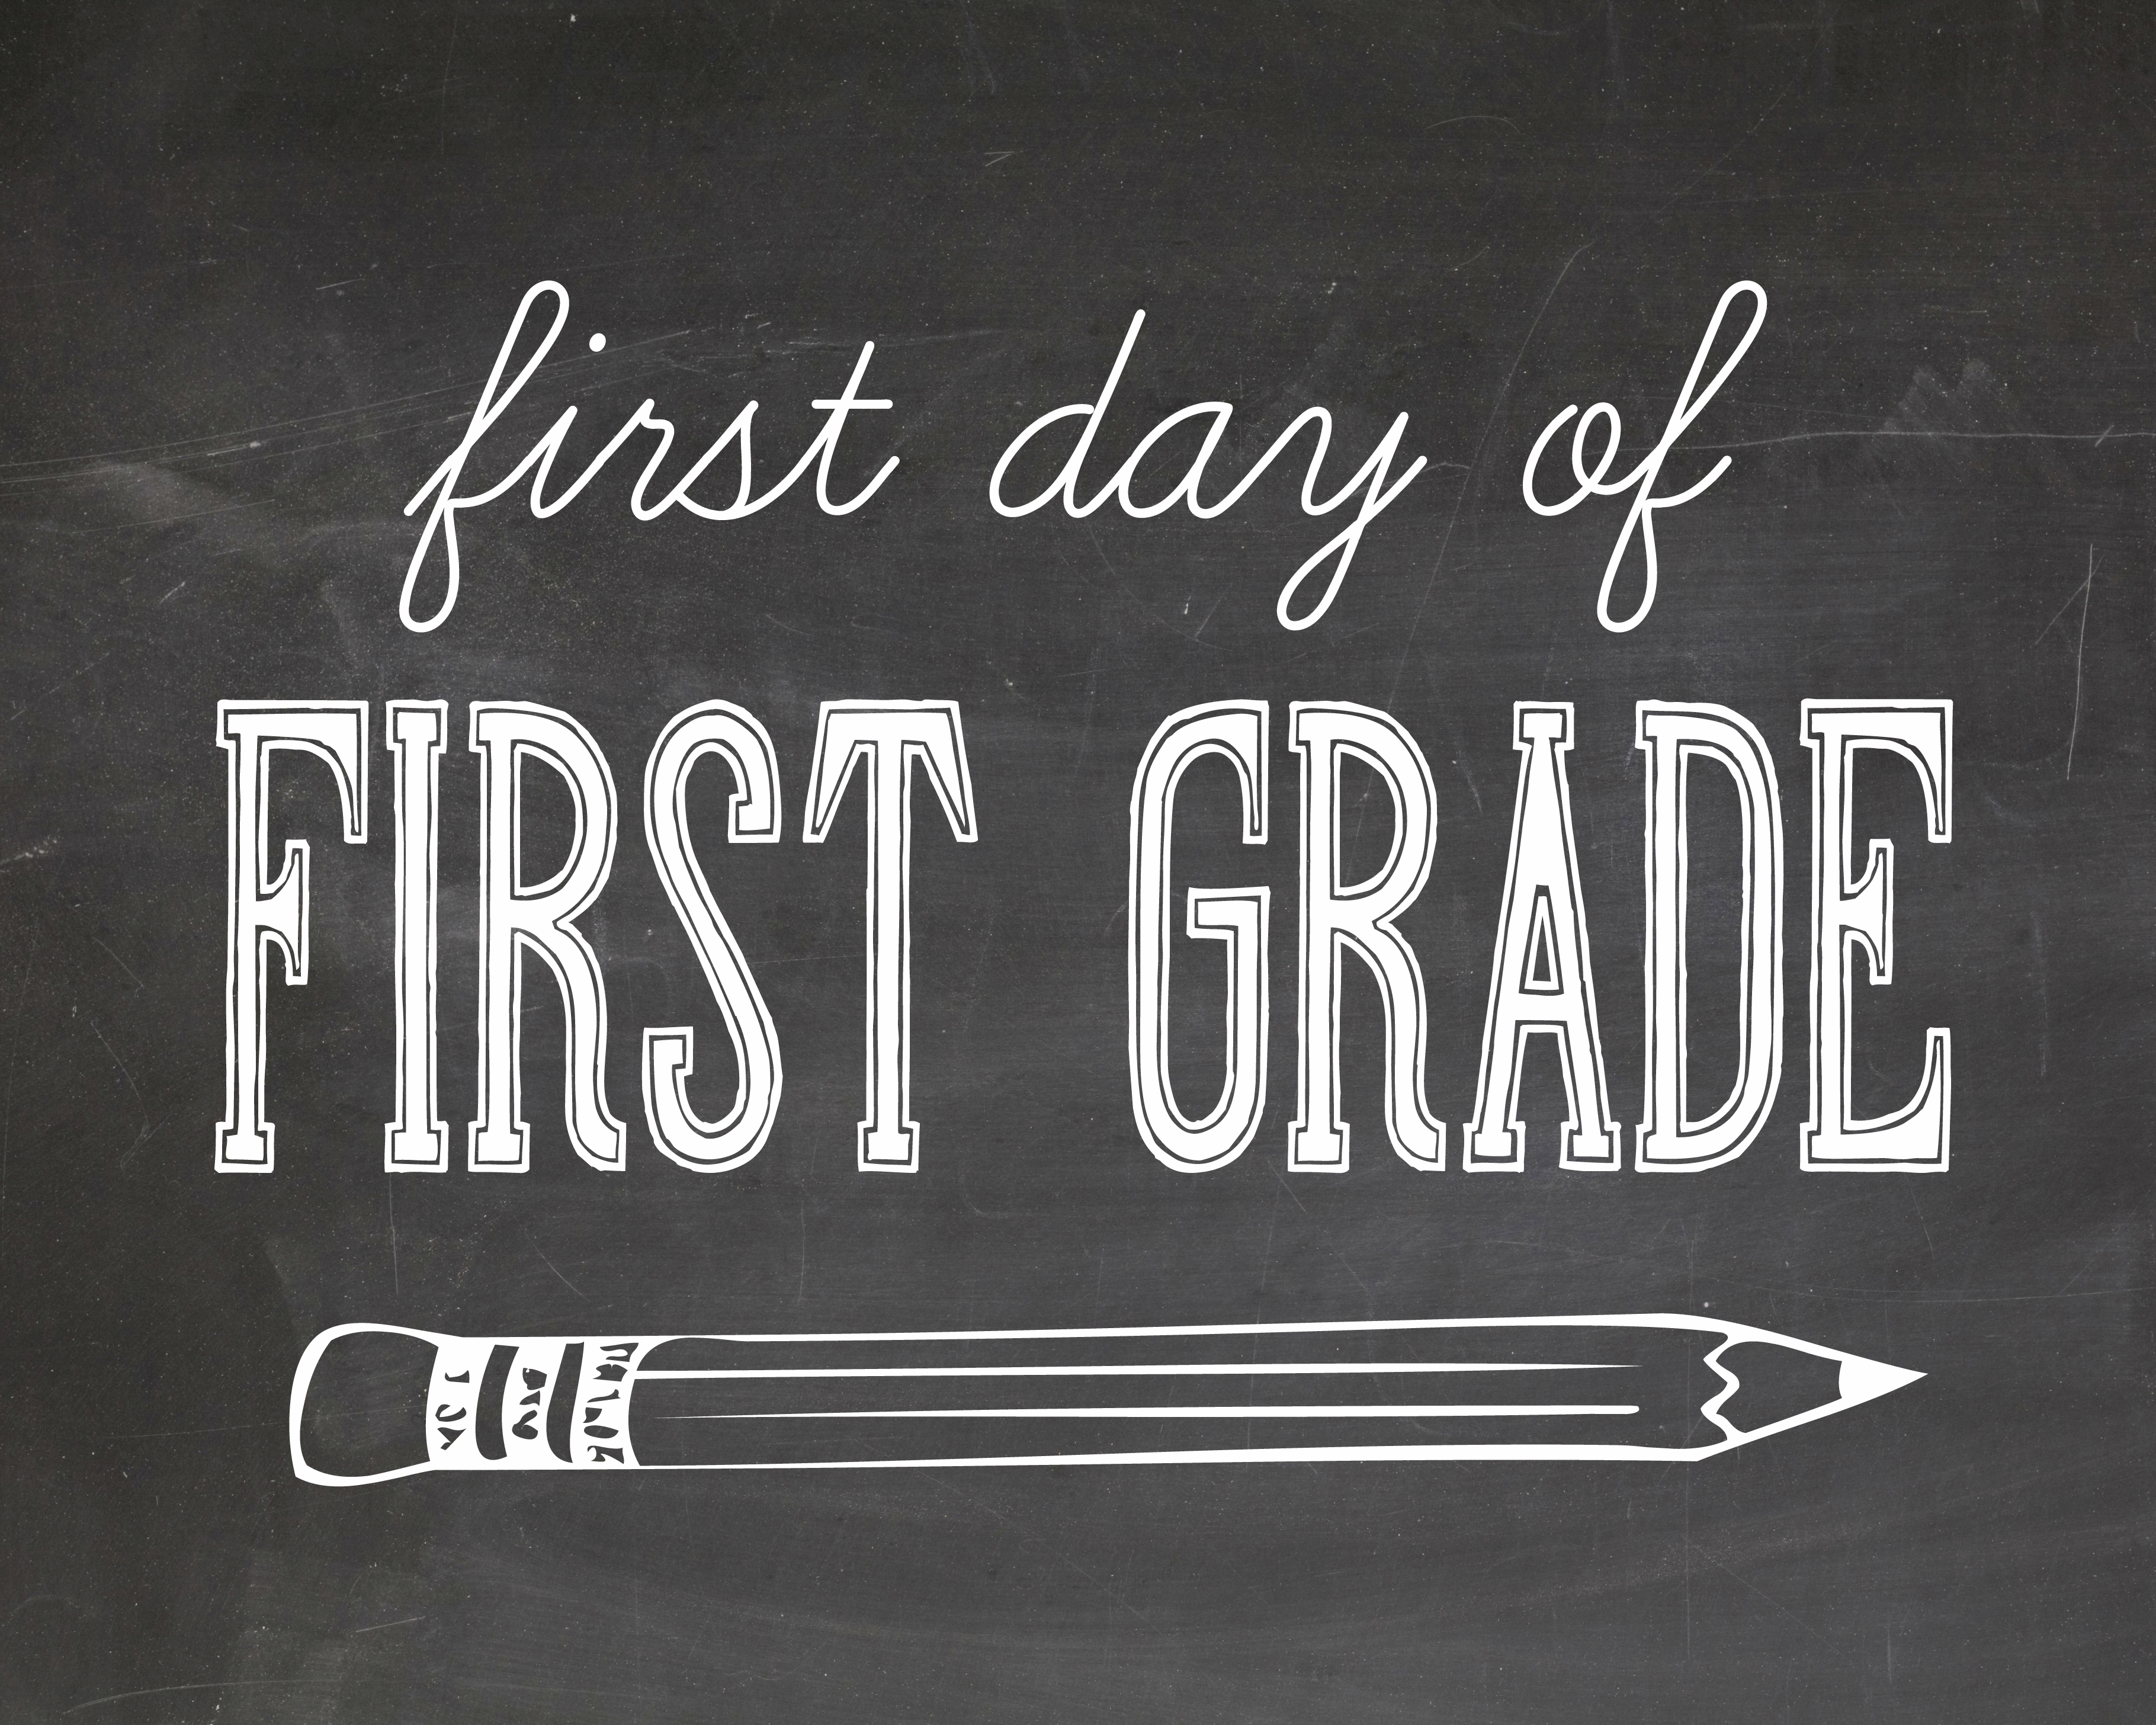 photograph about First Day of 3rd Grade Sign Printable referred to as Very first working day of college or university pictures printables